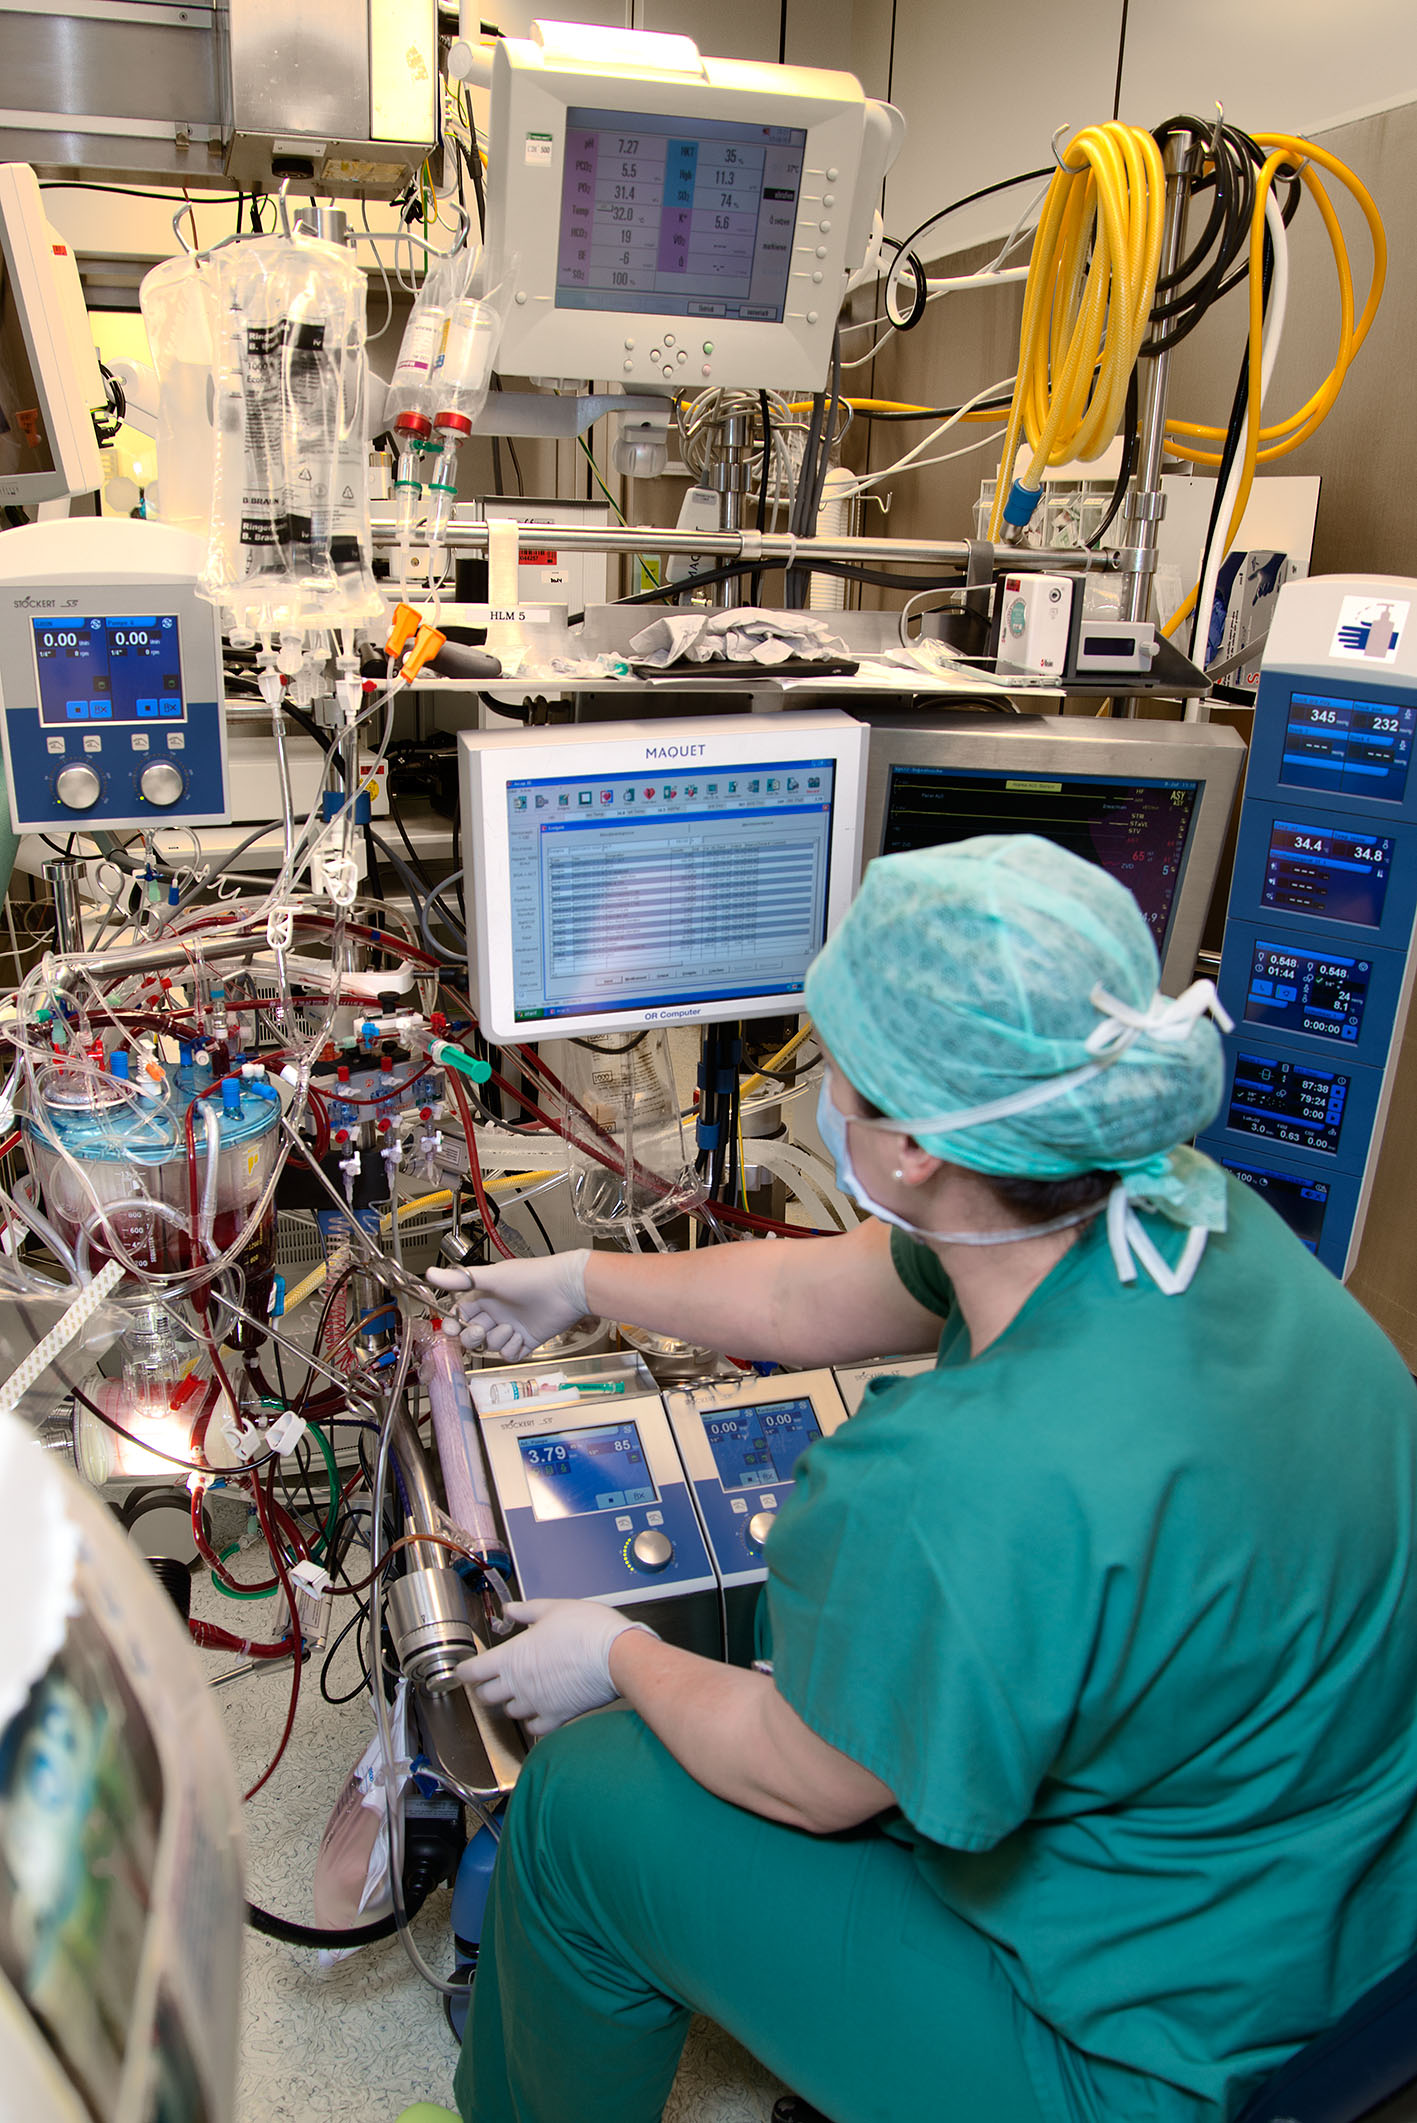 UZH - Division of Surgical Research - Photo Gallery